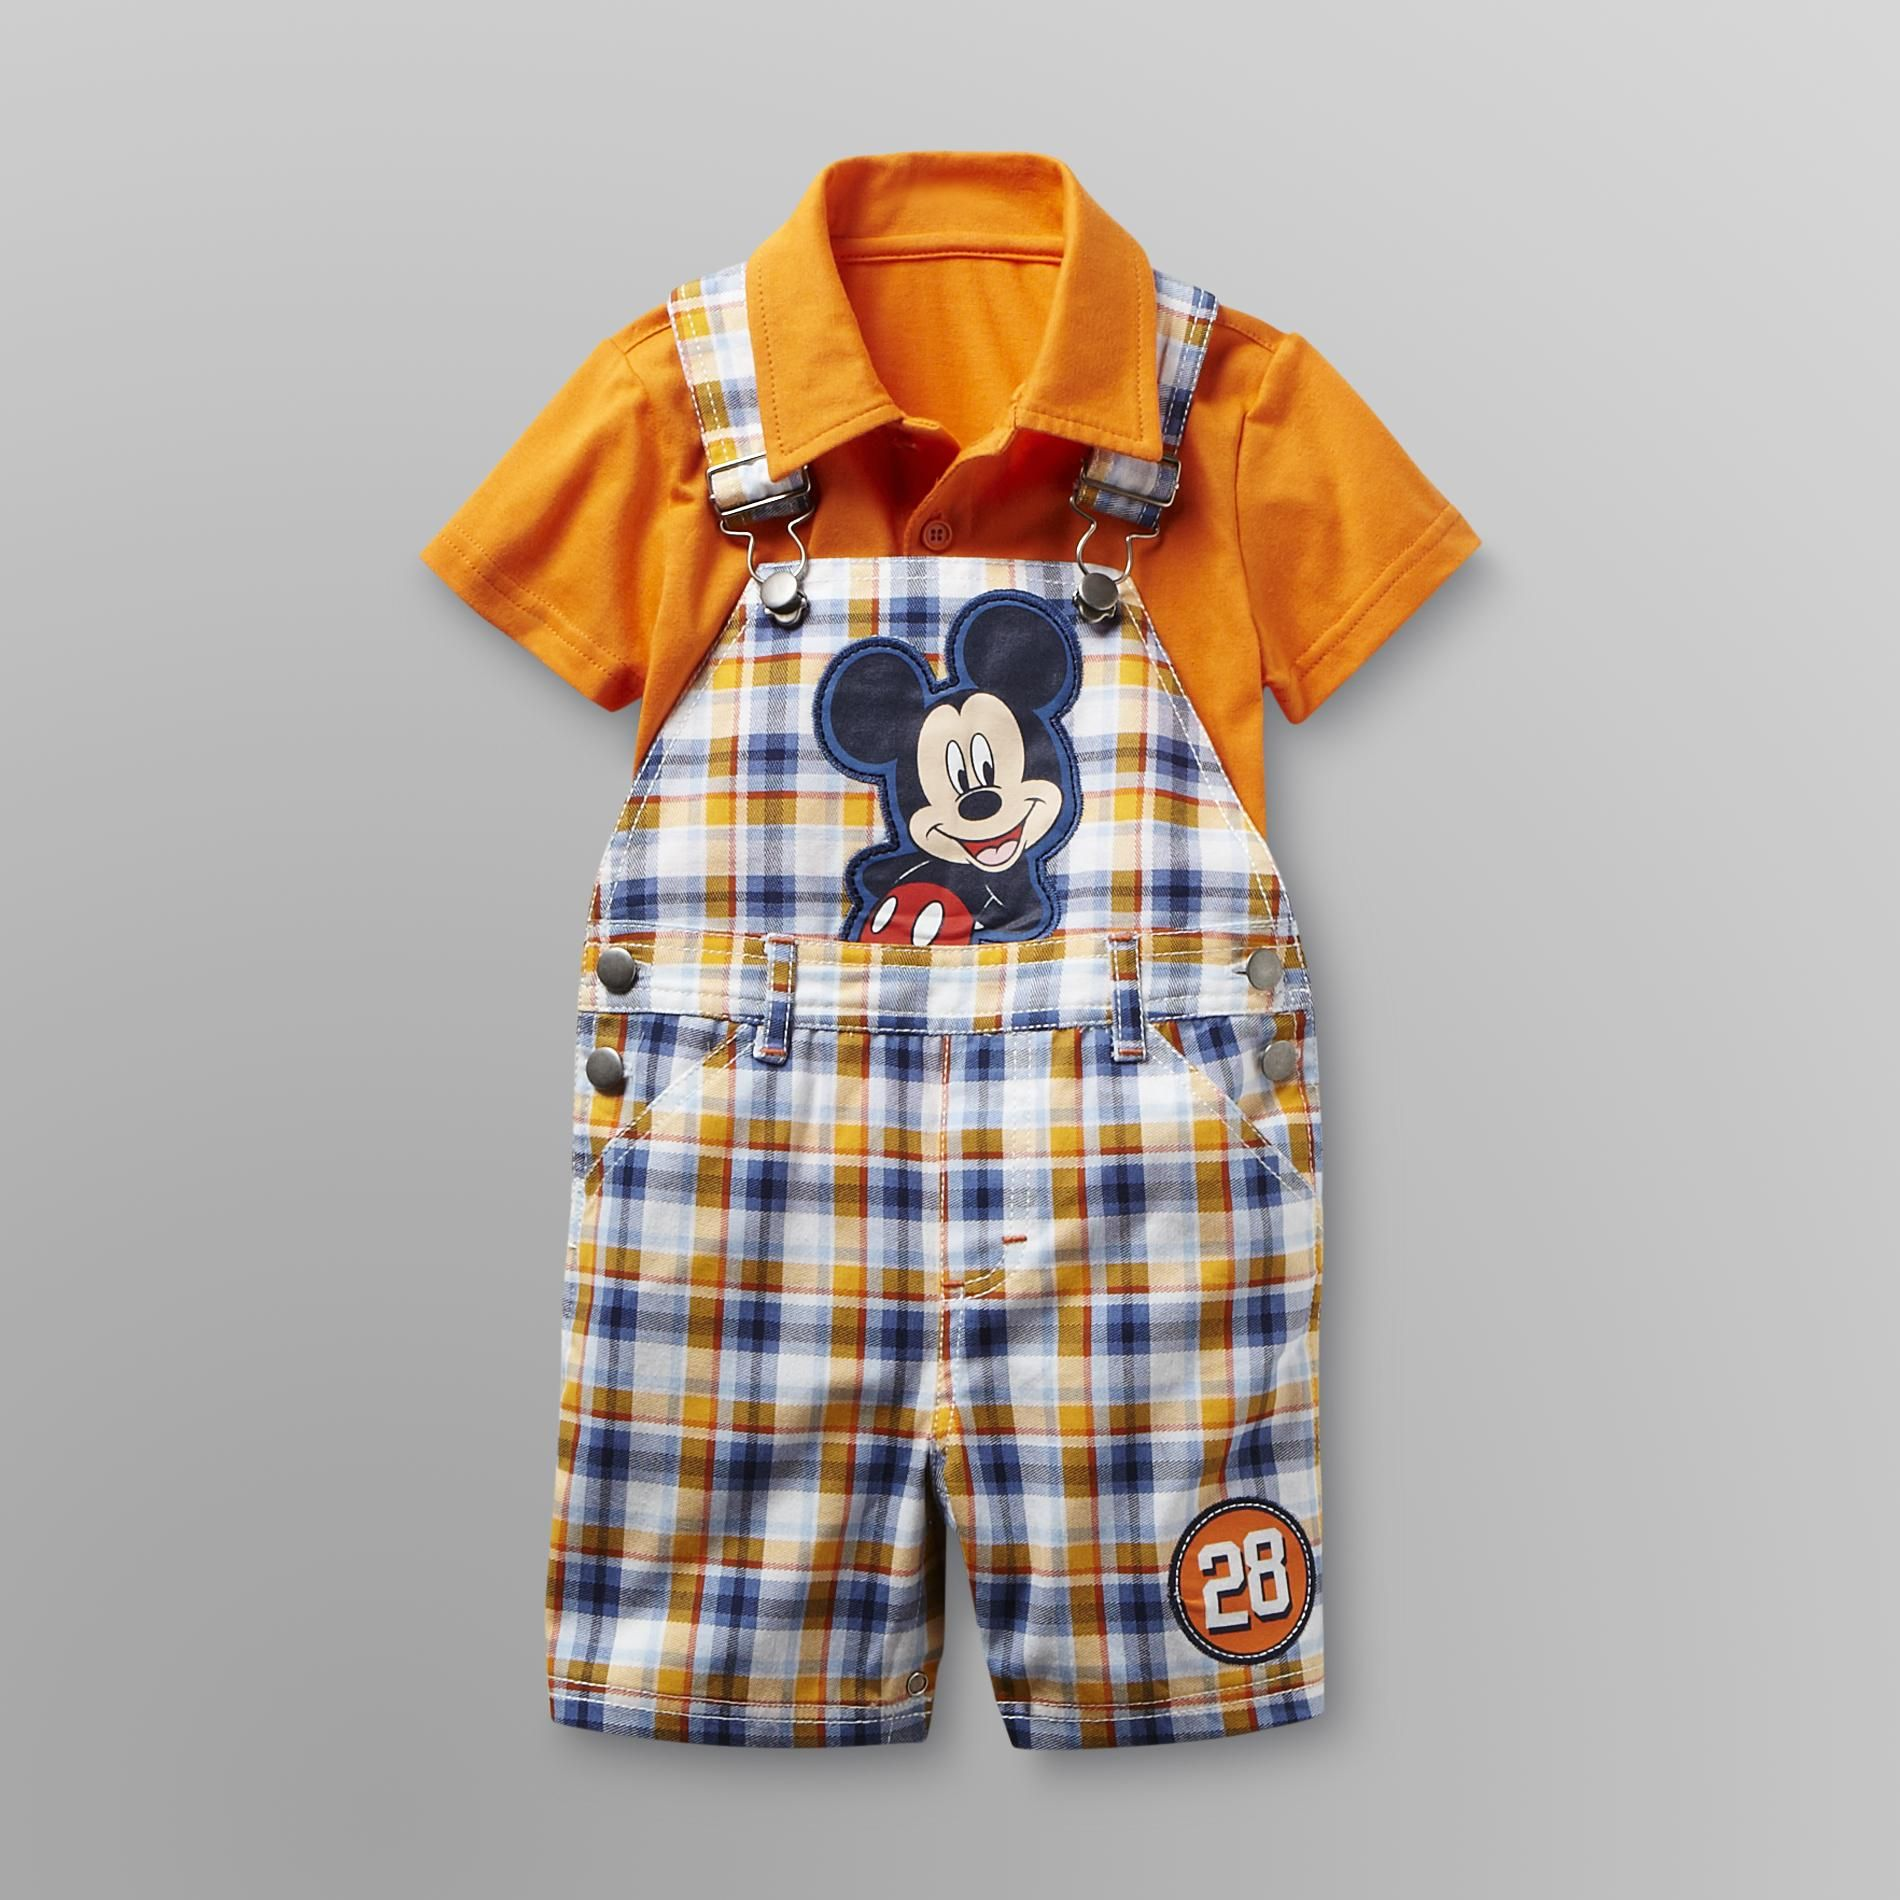 Disney Baby Mickey Mouse Infant Boys Overalls Shorts Set Overall Cathy